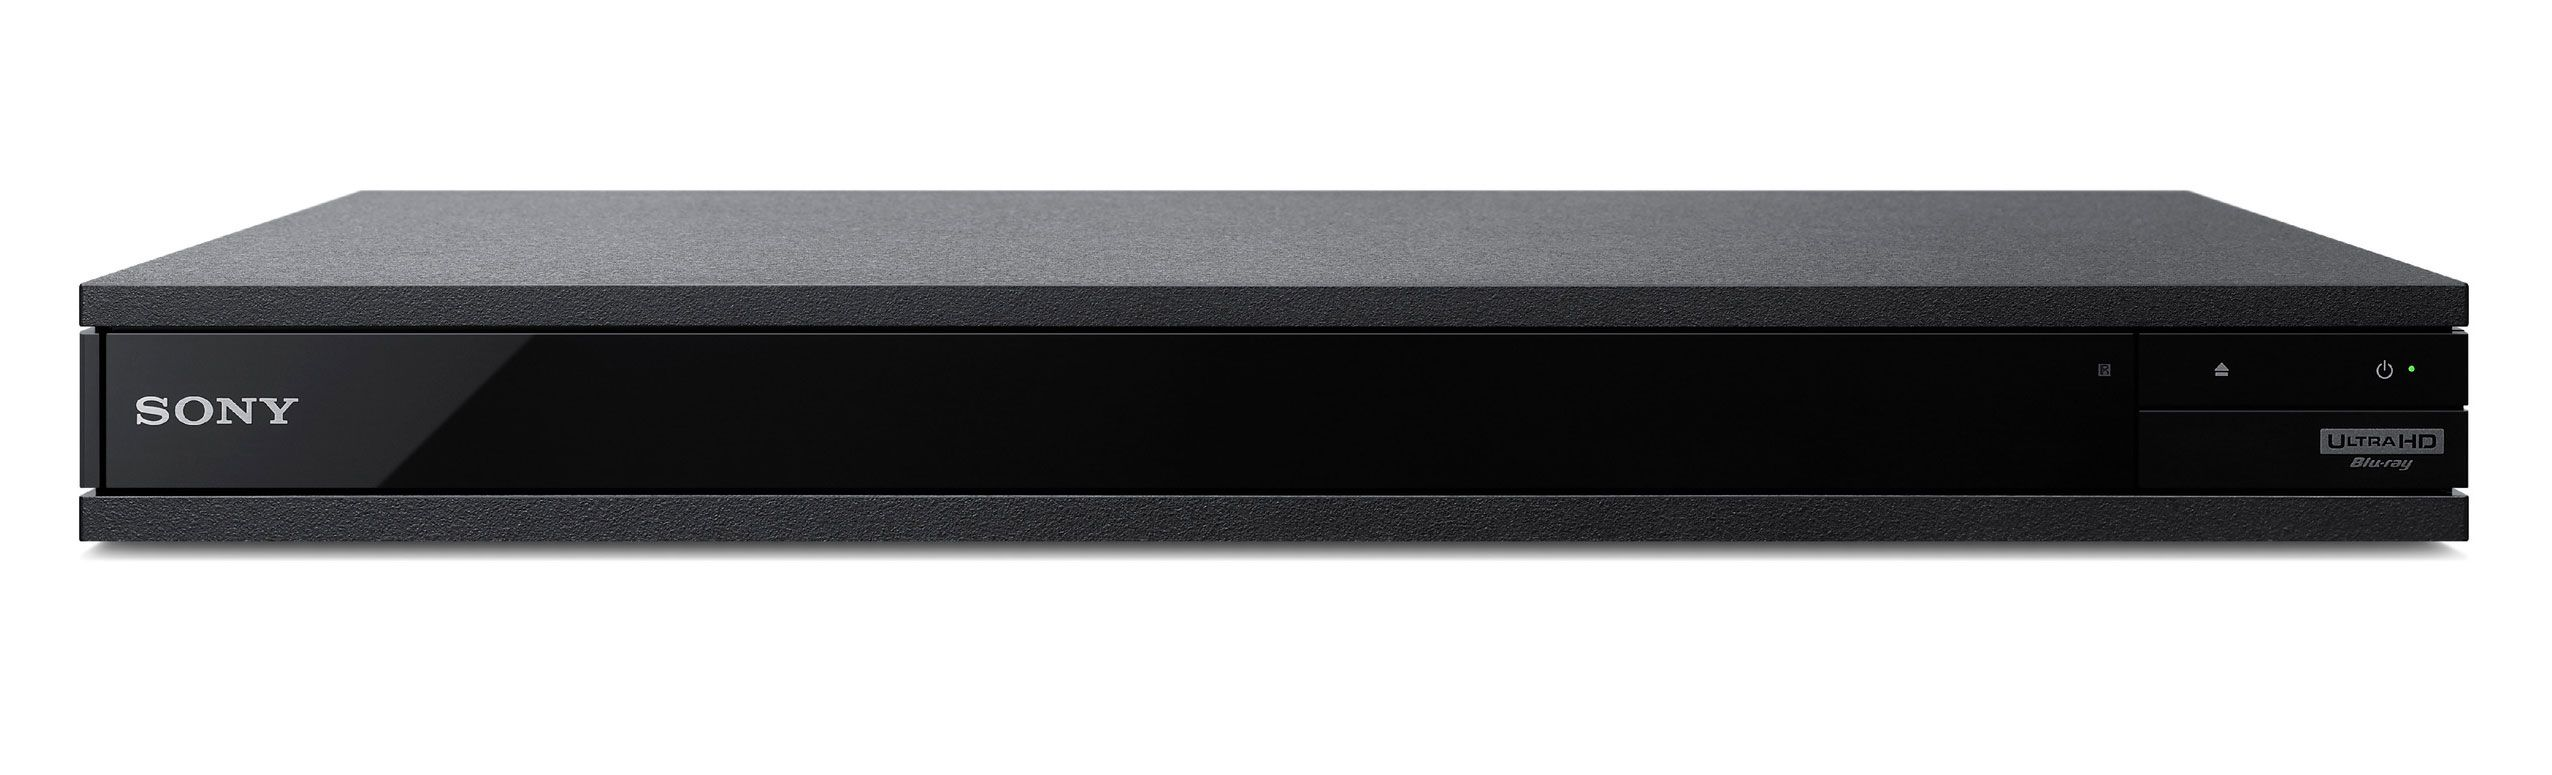 sony-4k-blu-ray-player-UBP-X800_Front2-large.jpg